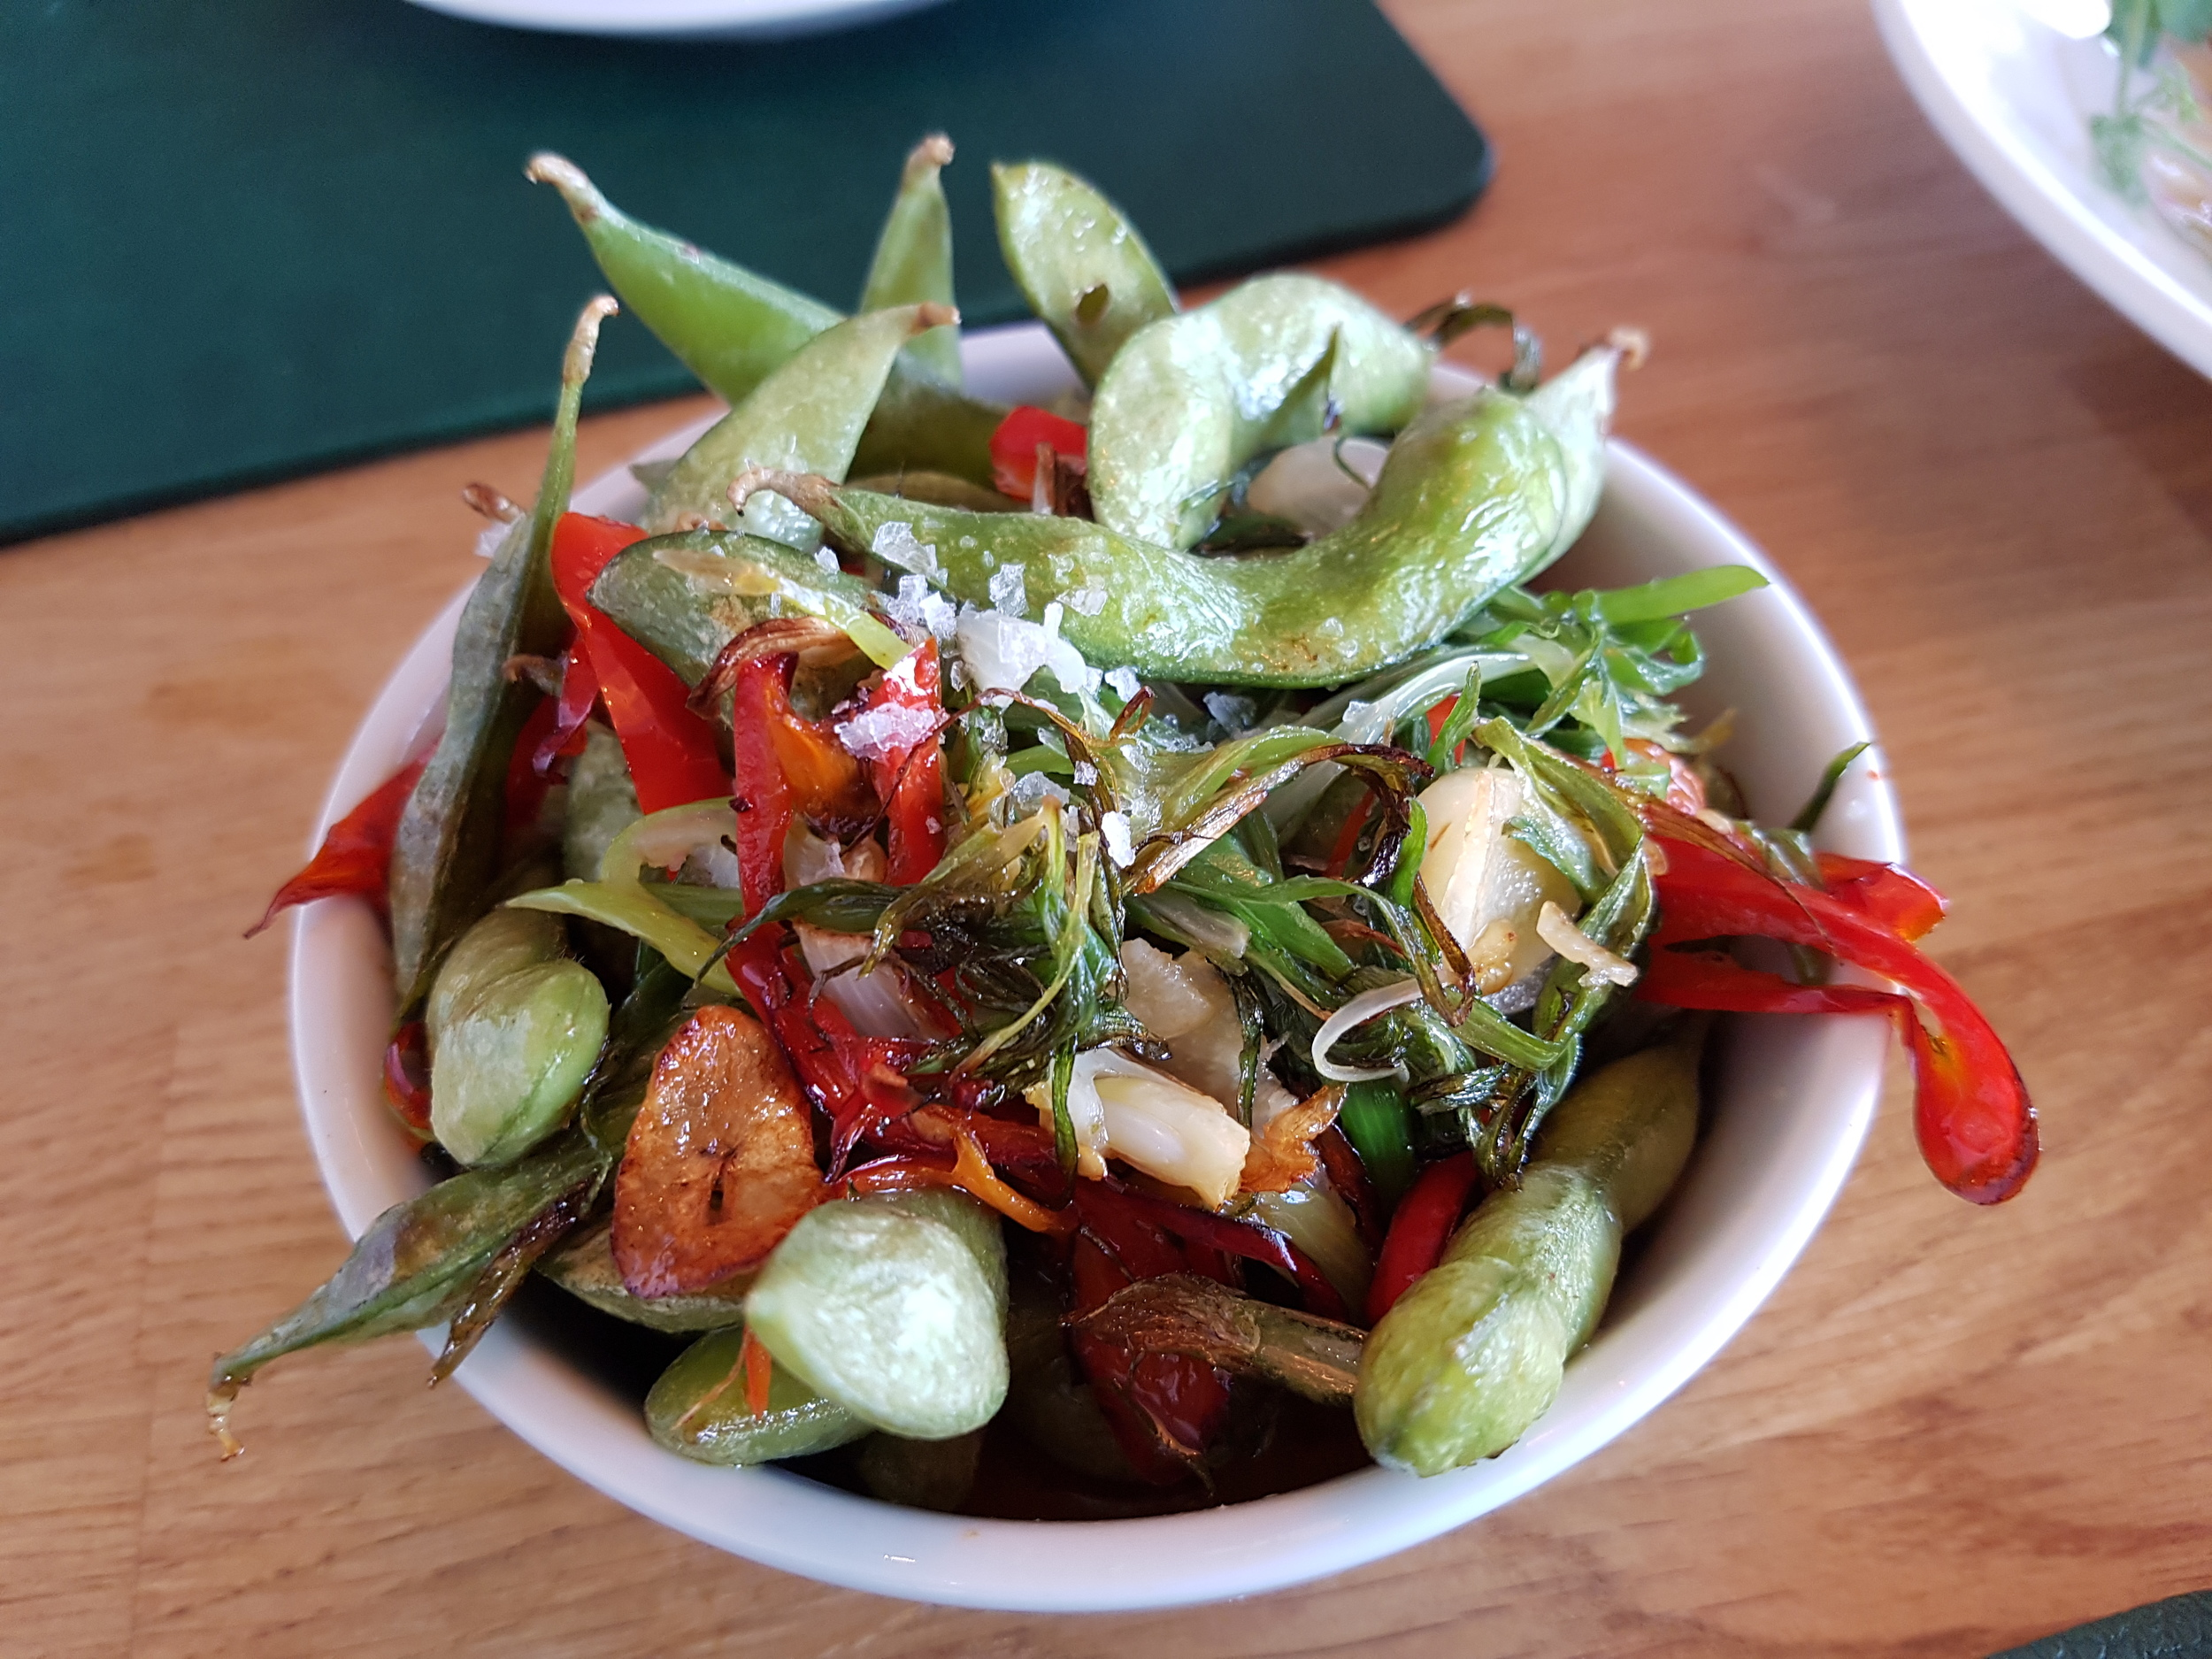 Edamame beans toasted in garlic, red chili and rock salt